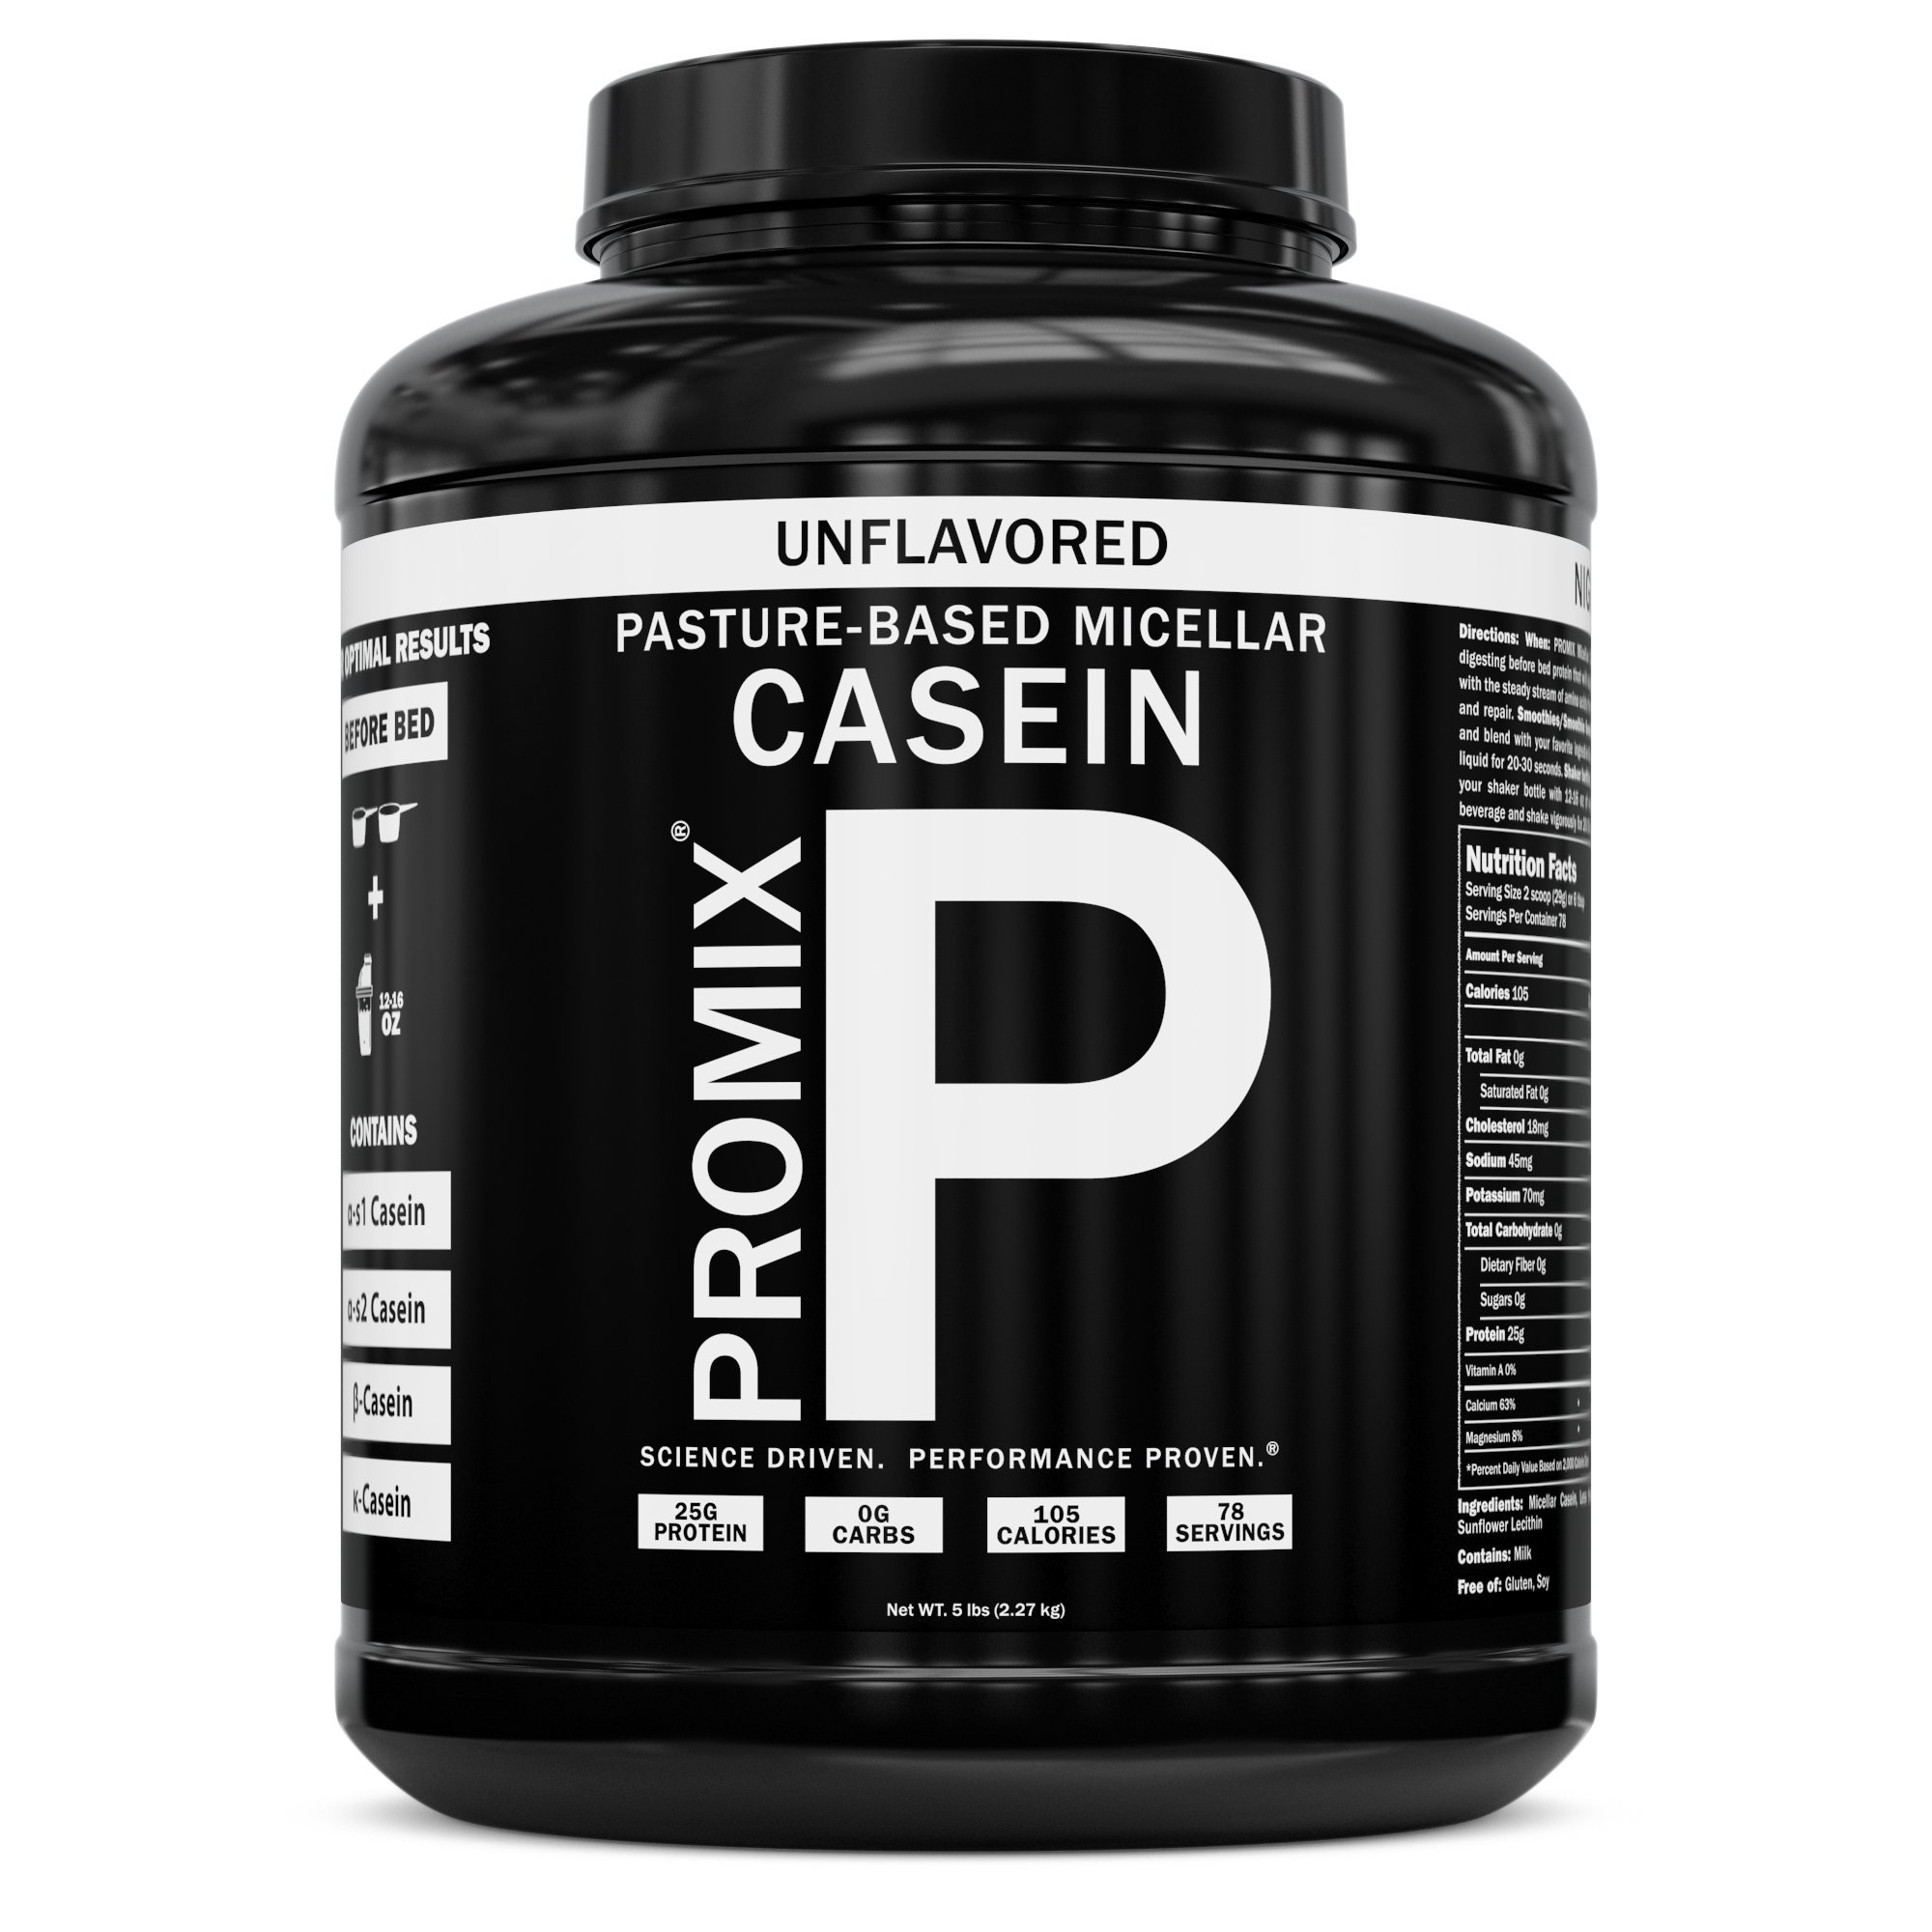 100% Casein Protein Powder I PROMIX Unflavored Micellar I USA Pastures I ONLY 1 Ingredient I Stimulate Muscle Growth & Recovery Slow Release Amino I Preservative Free Keto Bulk 5LB- No Soy, Gluten